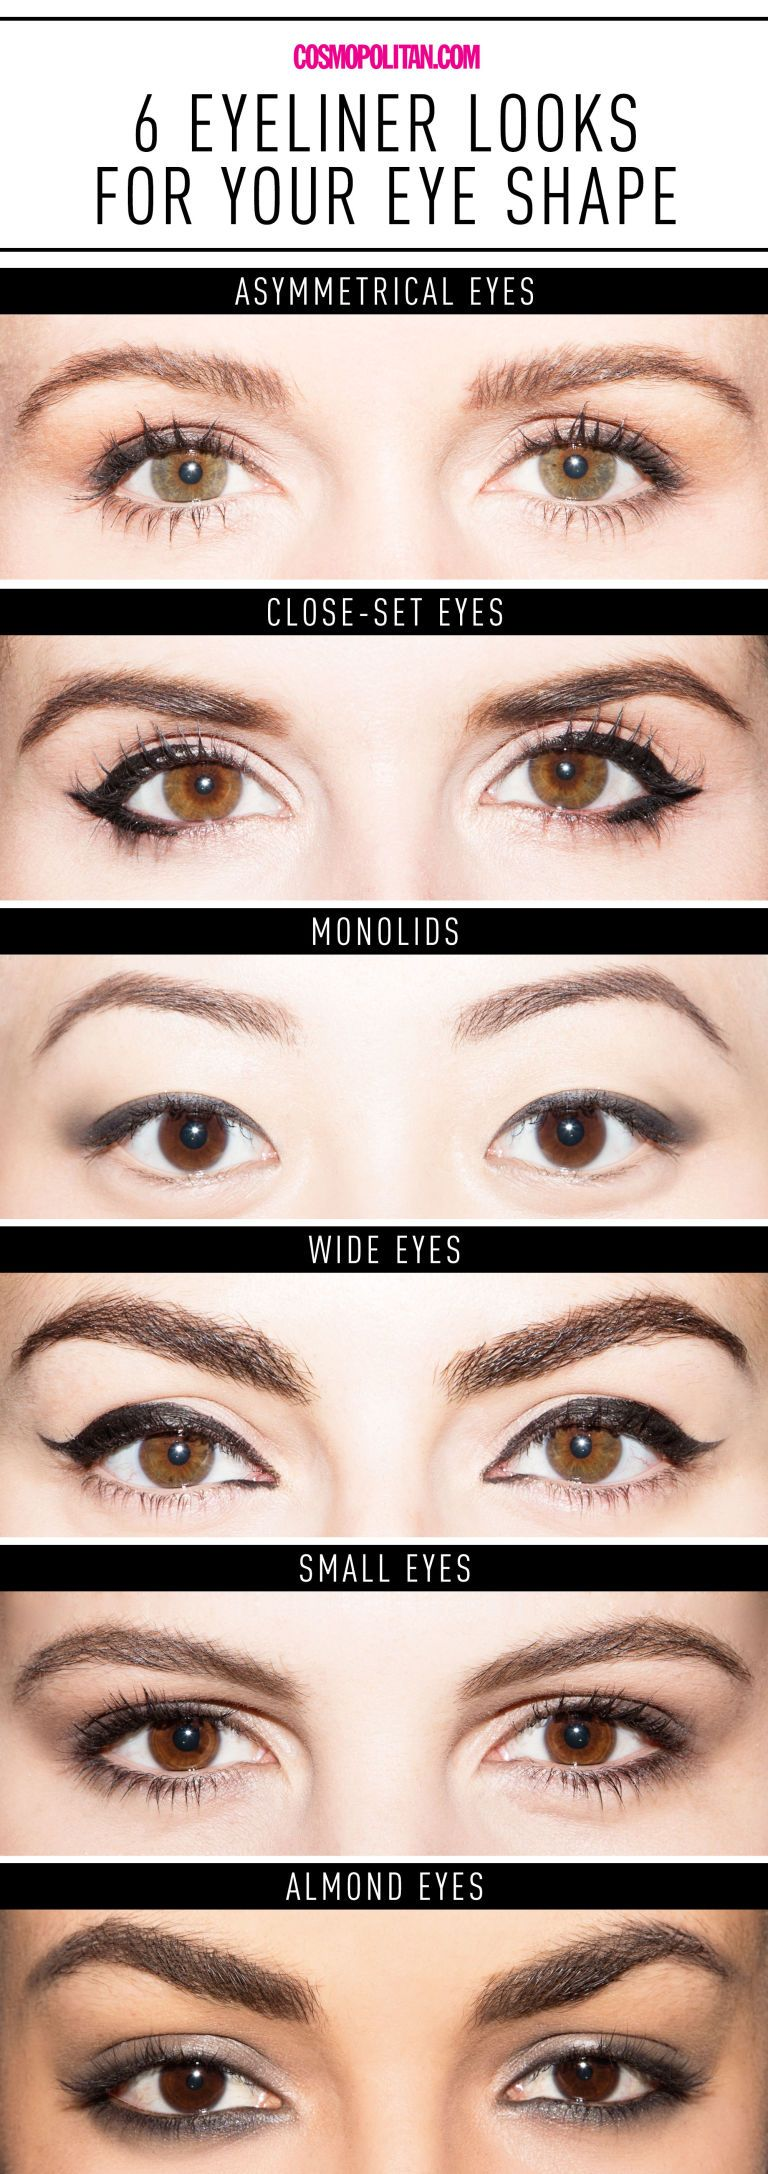 6 ways to get the perfect eyeliner look for your eye shape